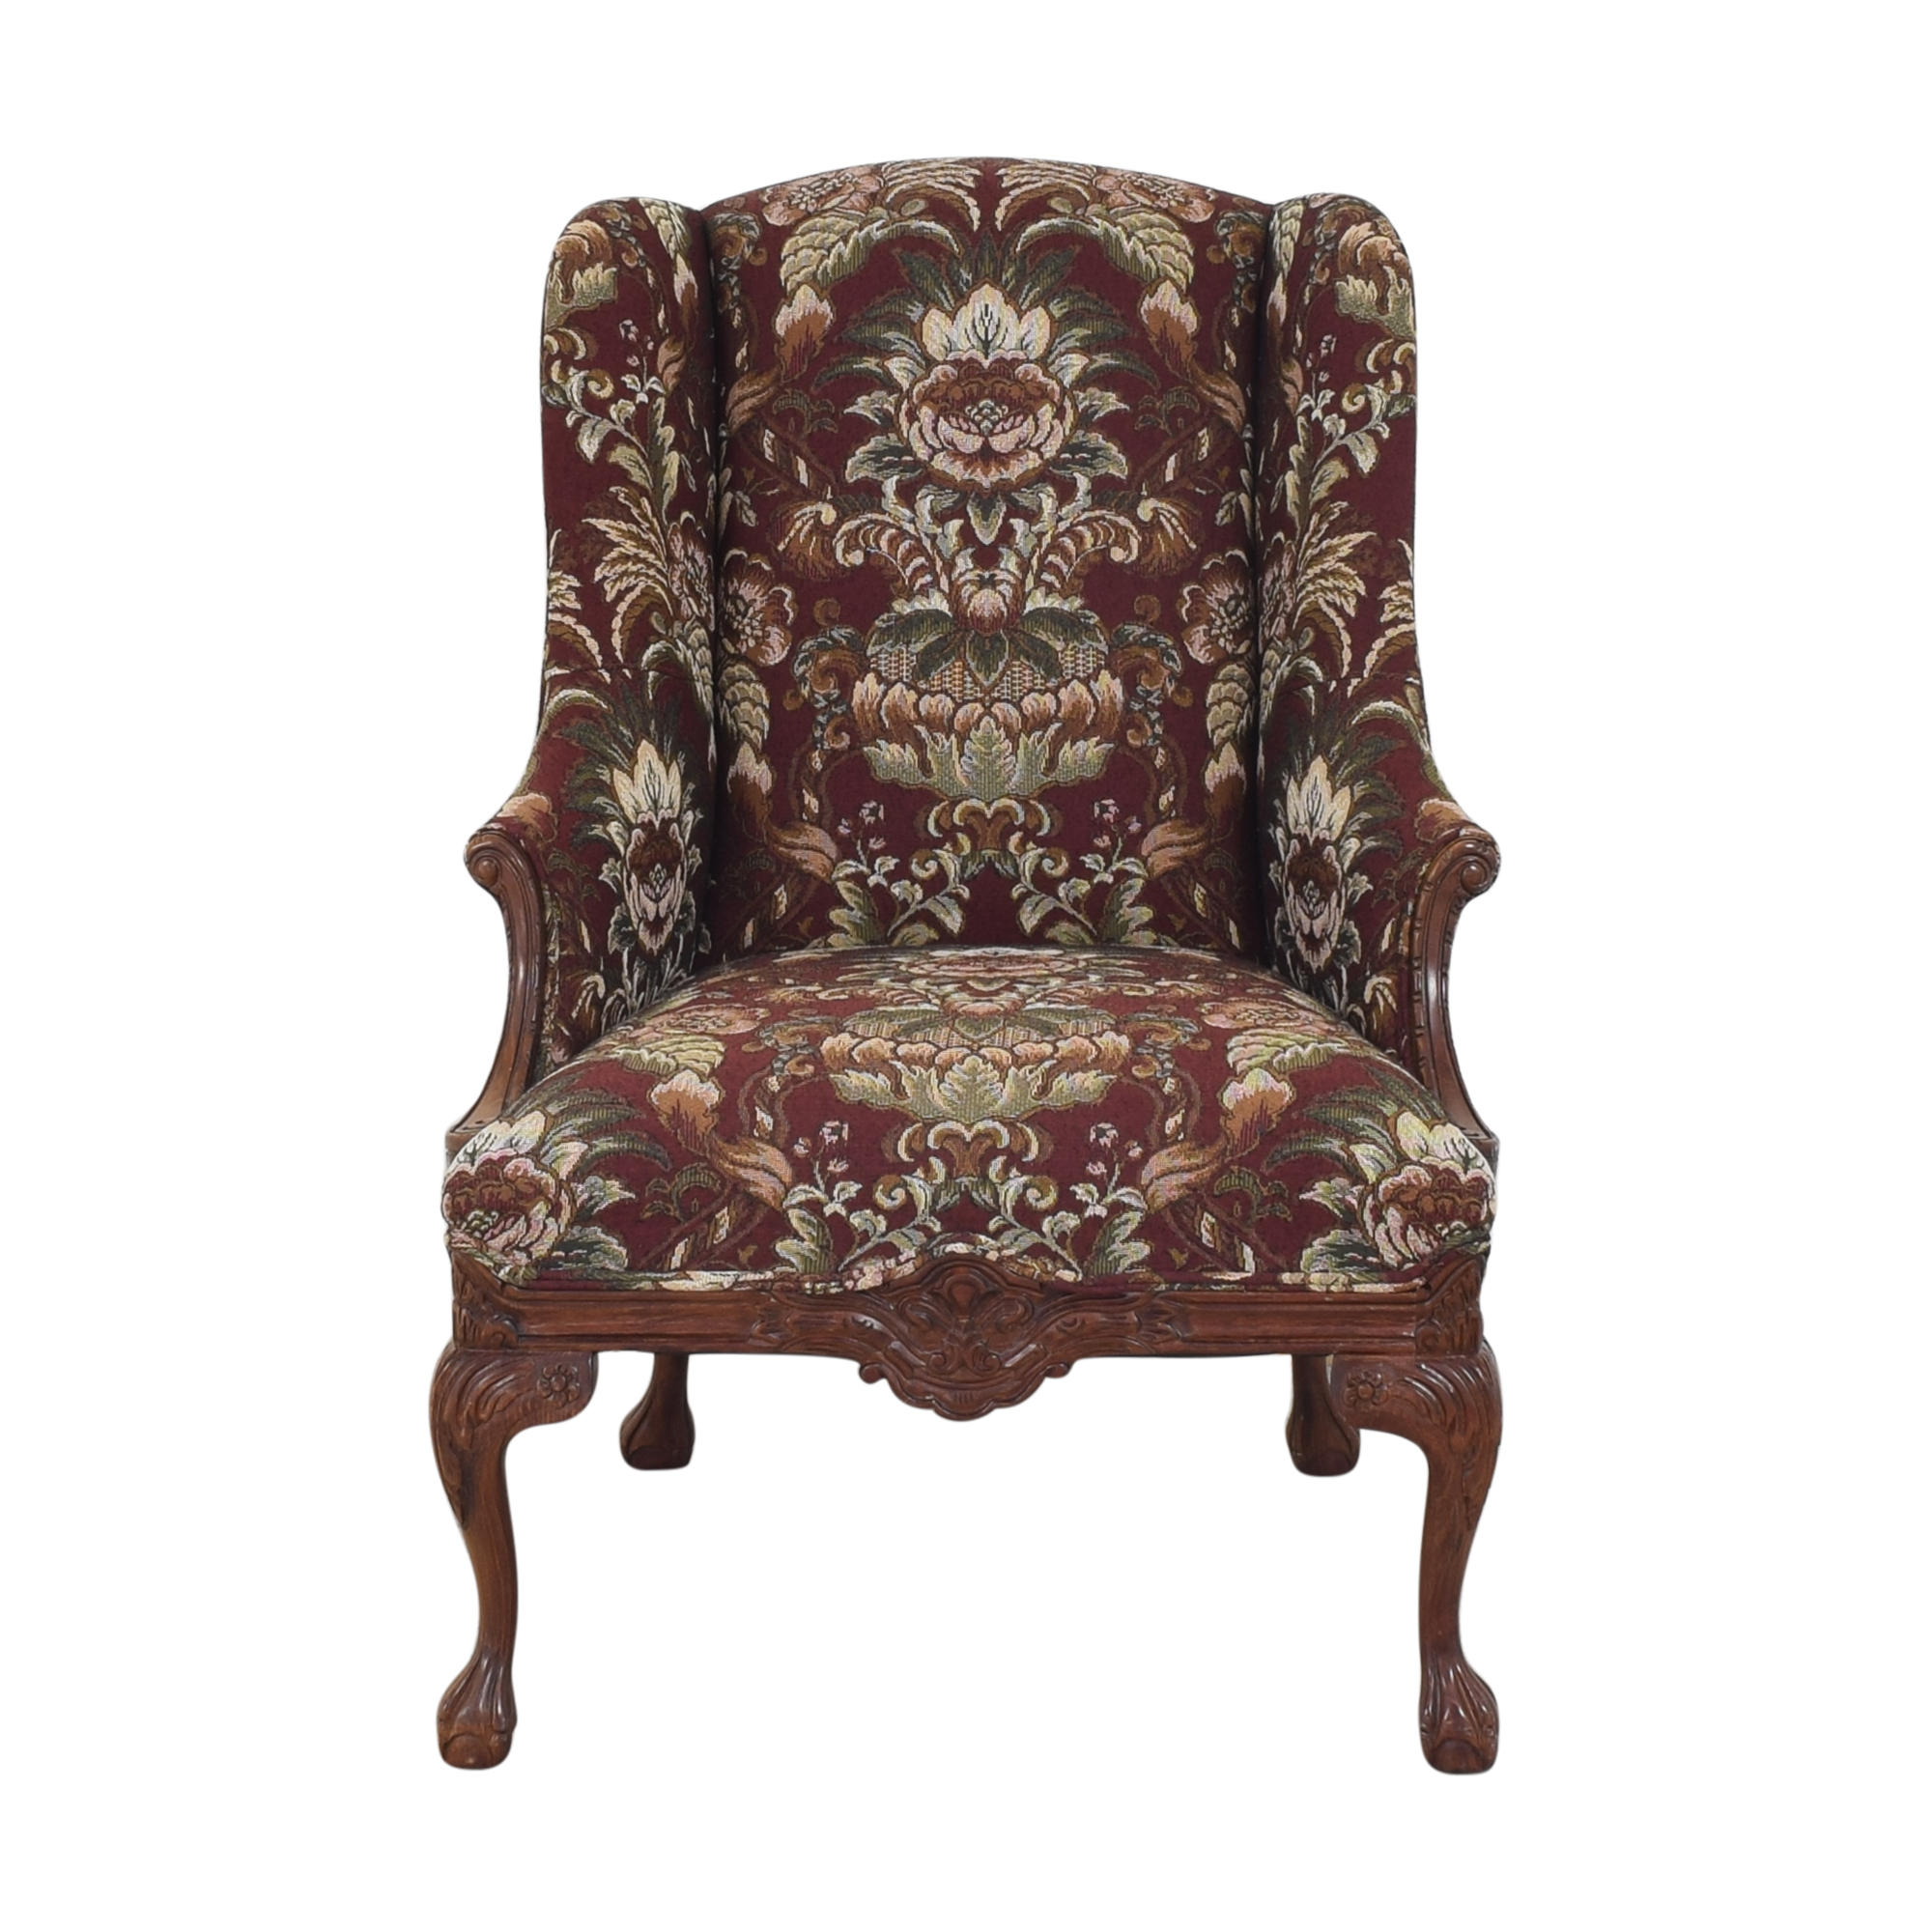 Drexel Heritage Wing Back Floral Chair / Chairs